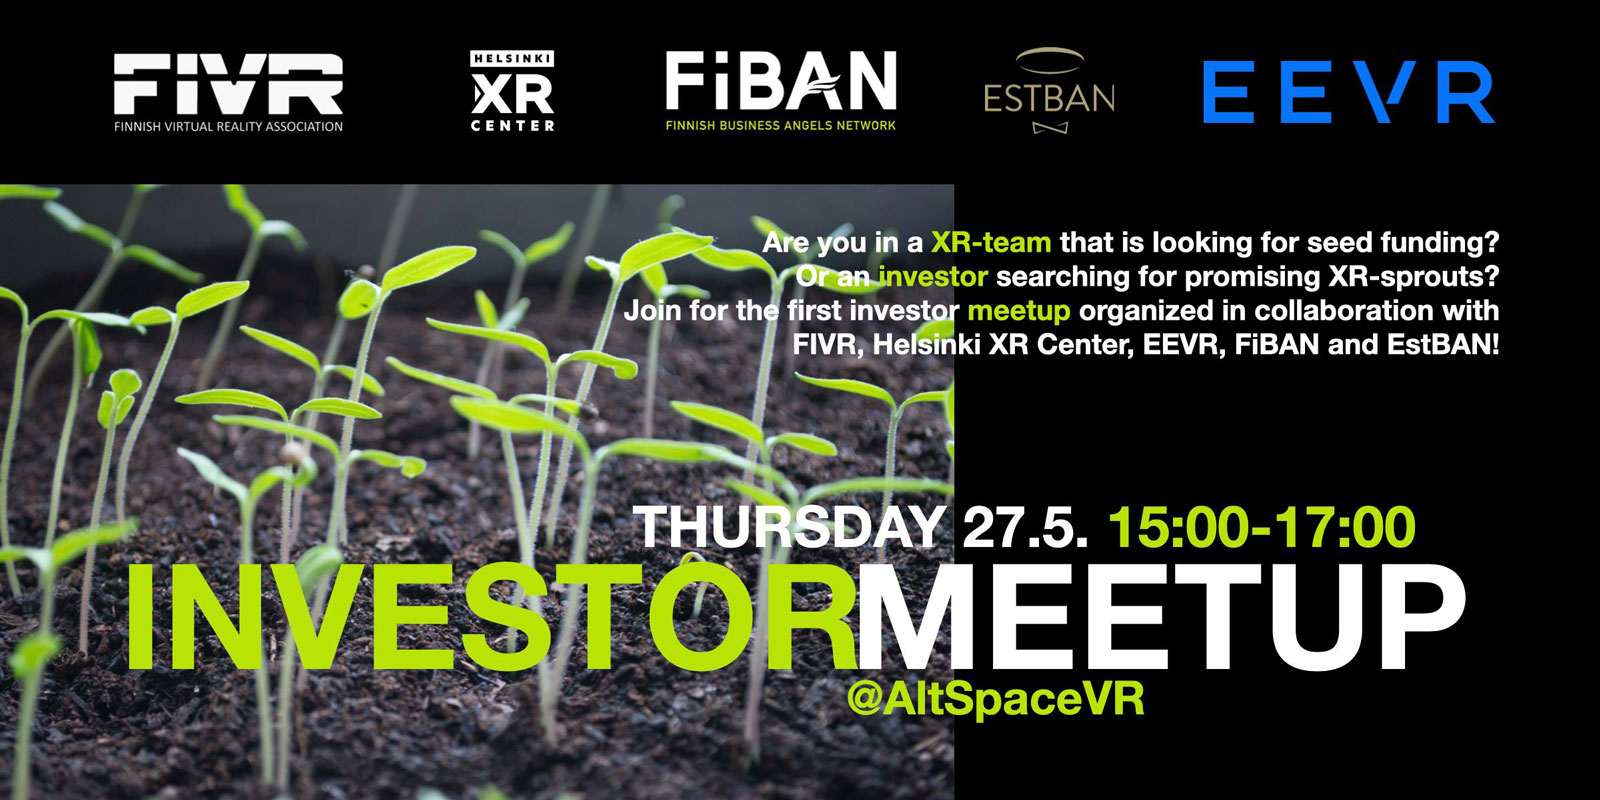 FIVR Investor Meetup on the 27th of May 2021.